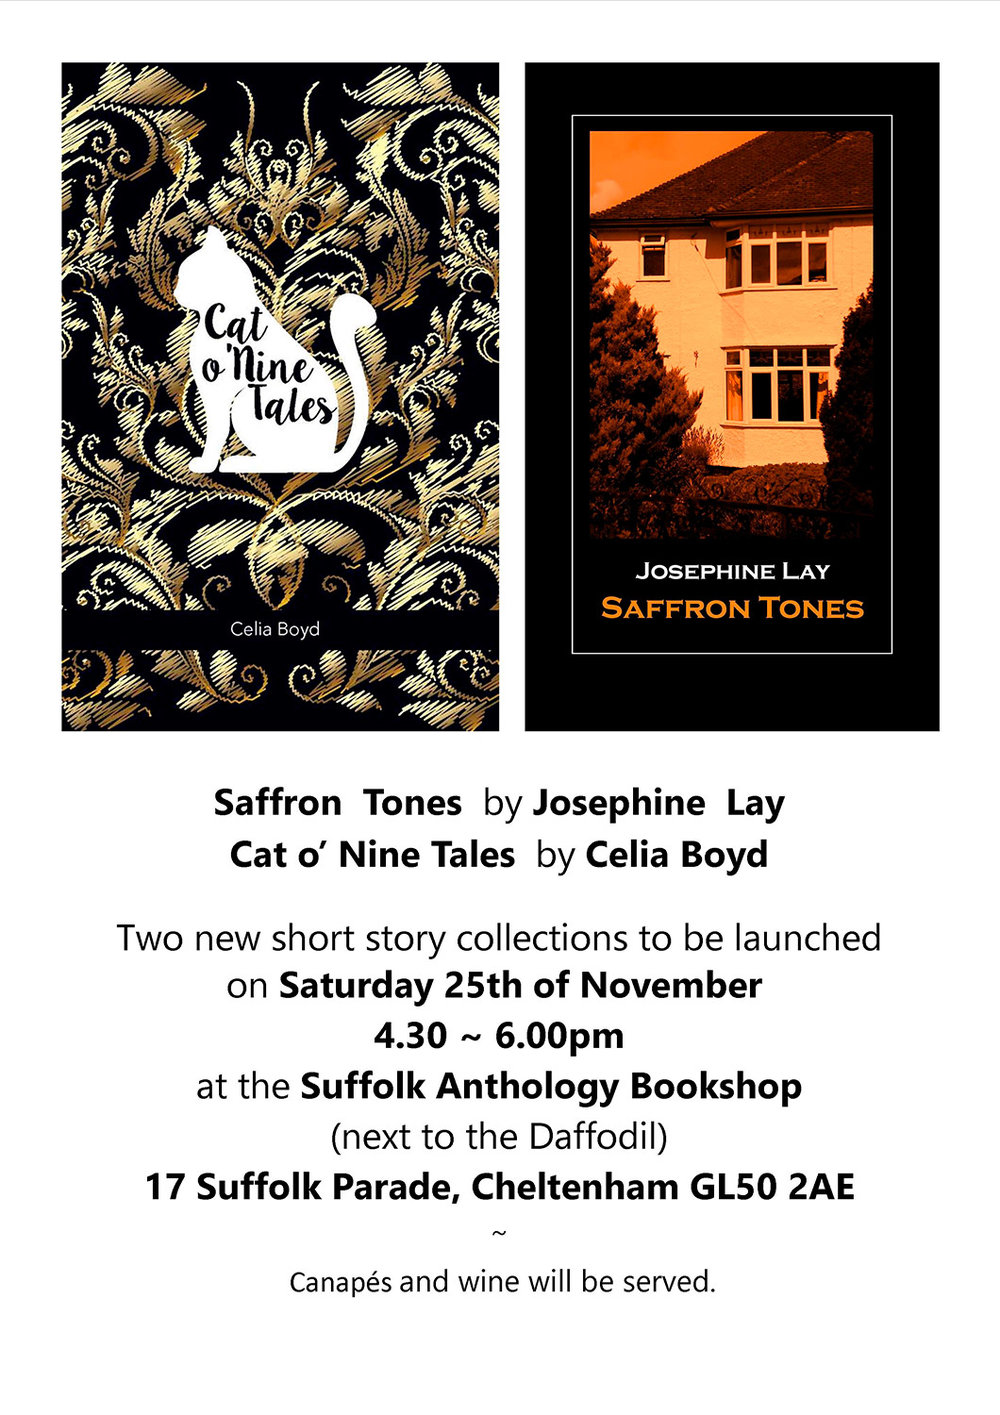 Poster of a book launch for two authors, Celia Boyd and Josephine Lay for their books titles Cat o' Nine Tales and Saffron Tales.